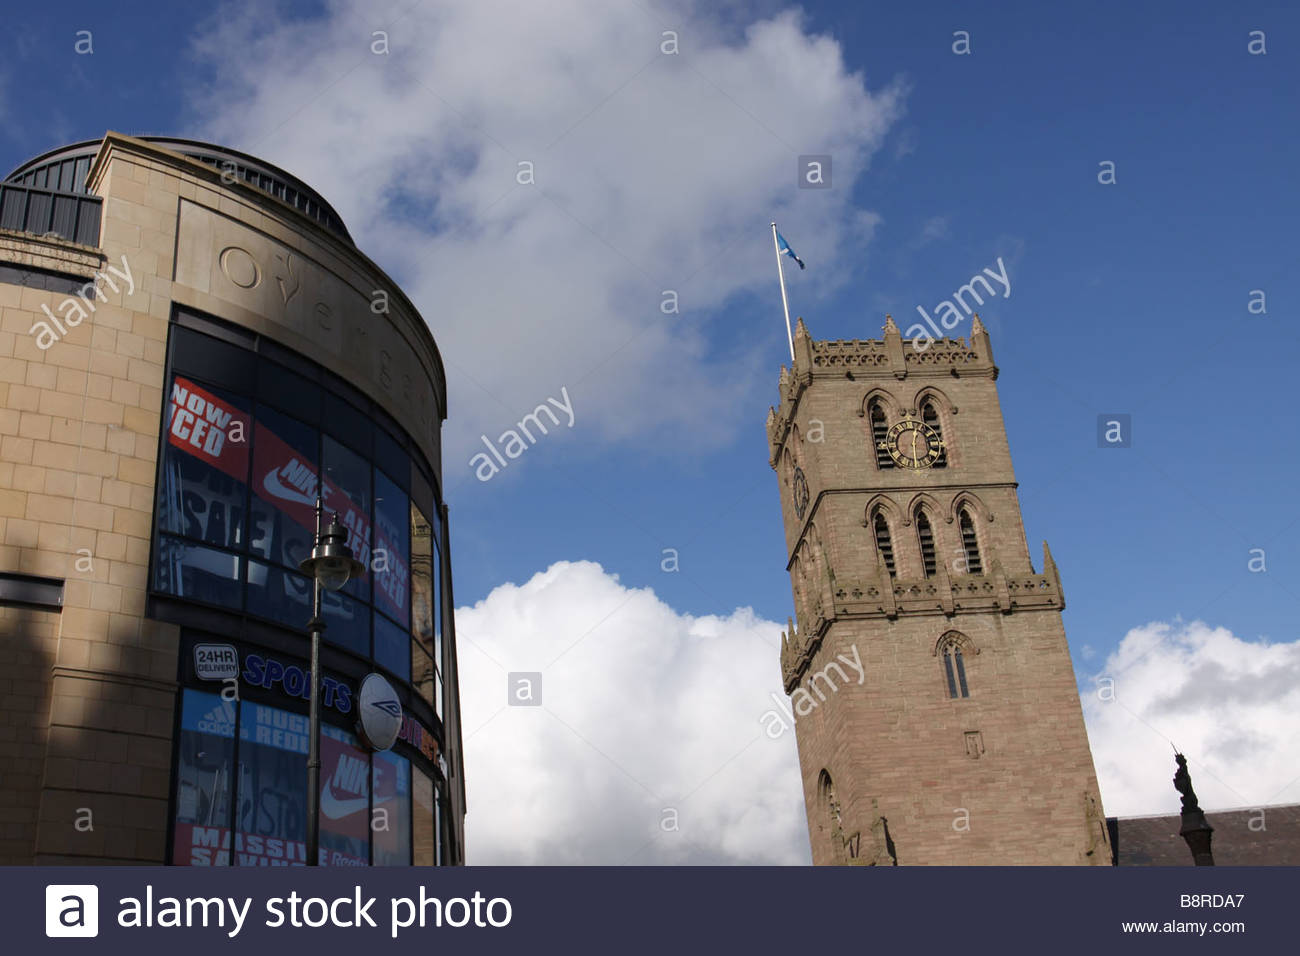 Auld Steeple church and Overgate shopping Centre in Dundee City Centre  February 2009 Stock Photo